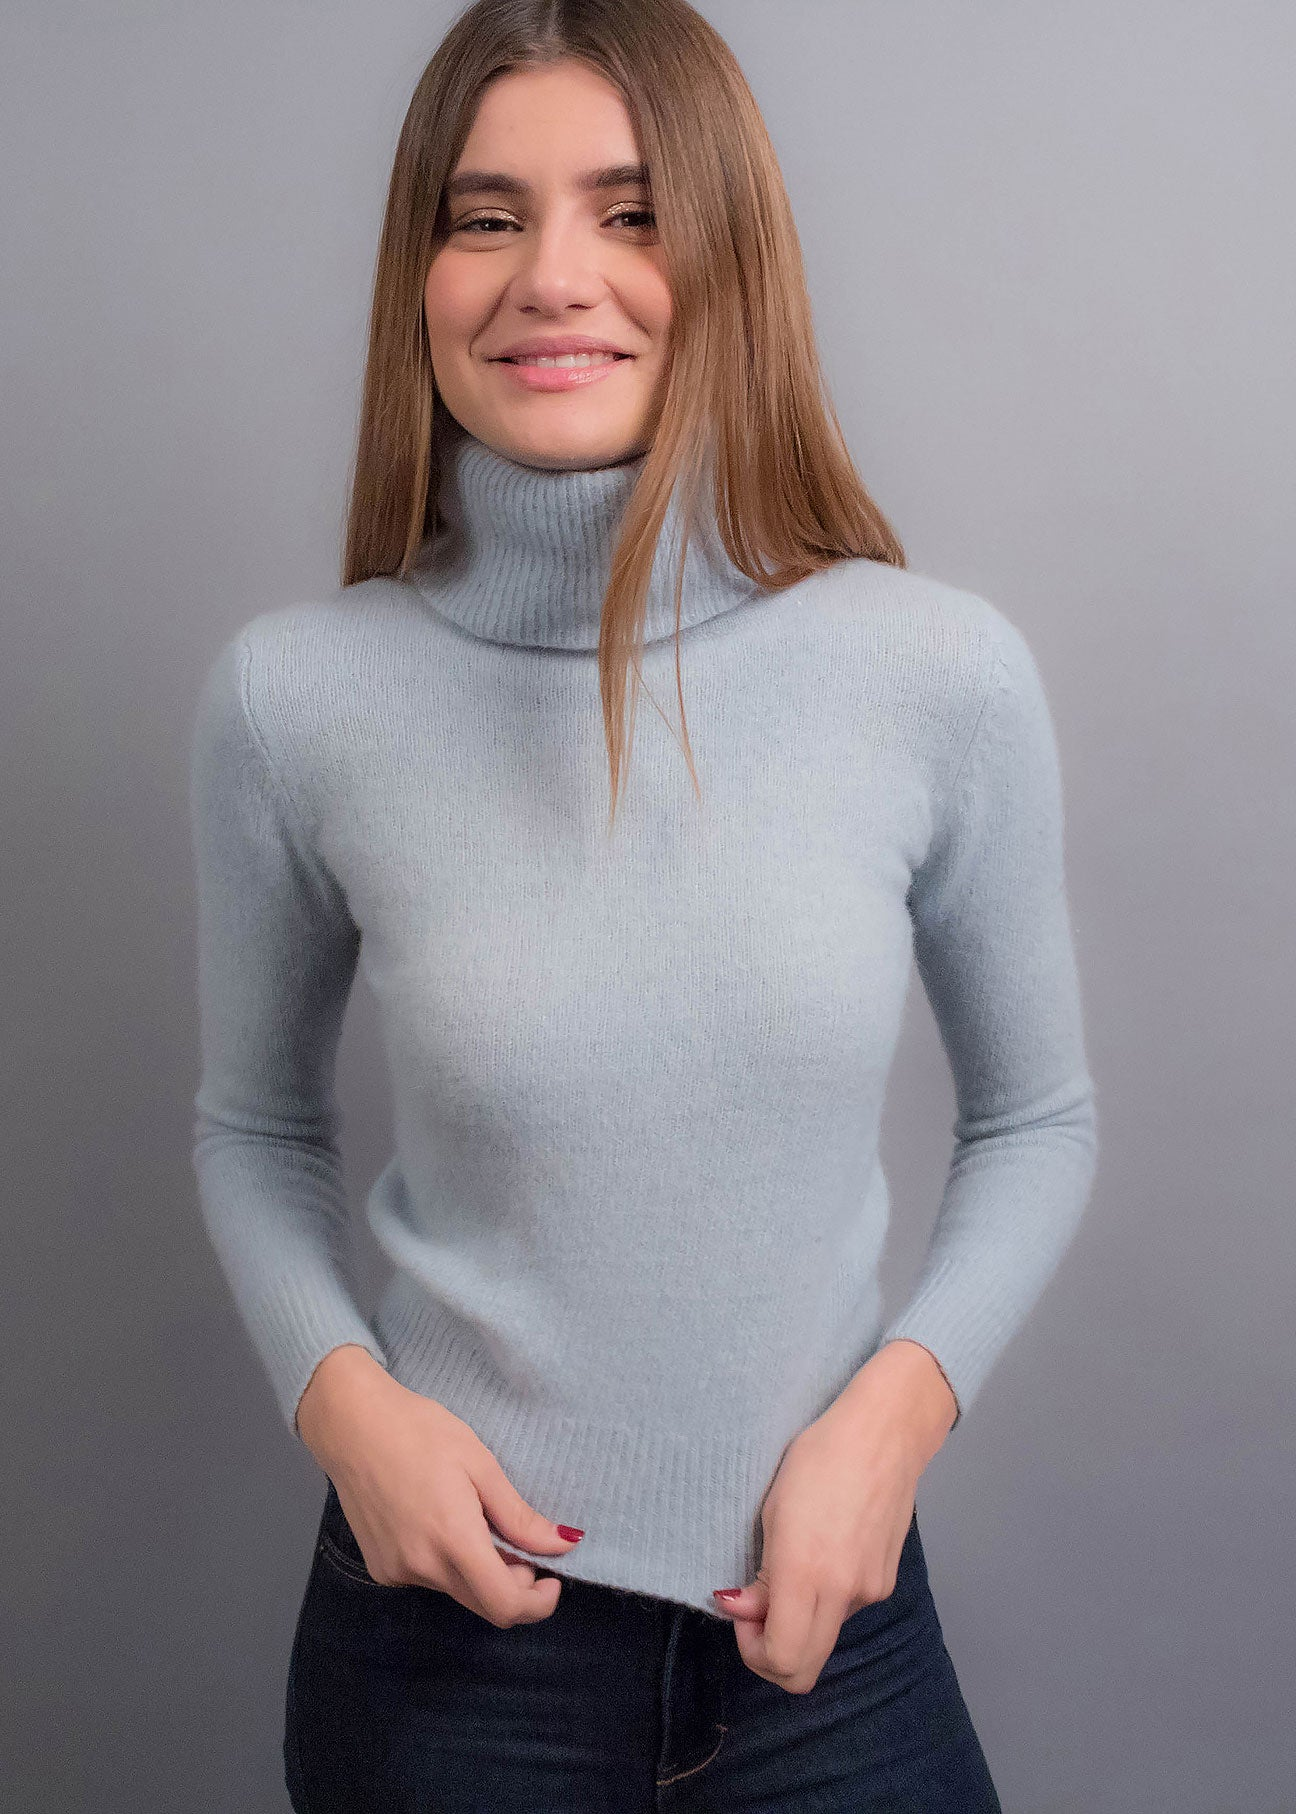 90s Cropped Angora Sweater